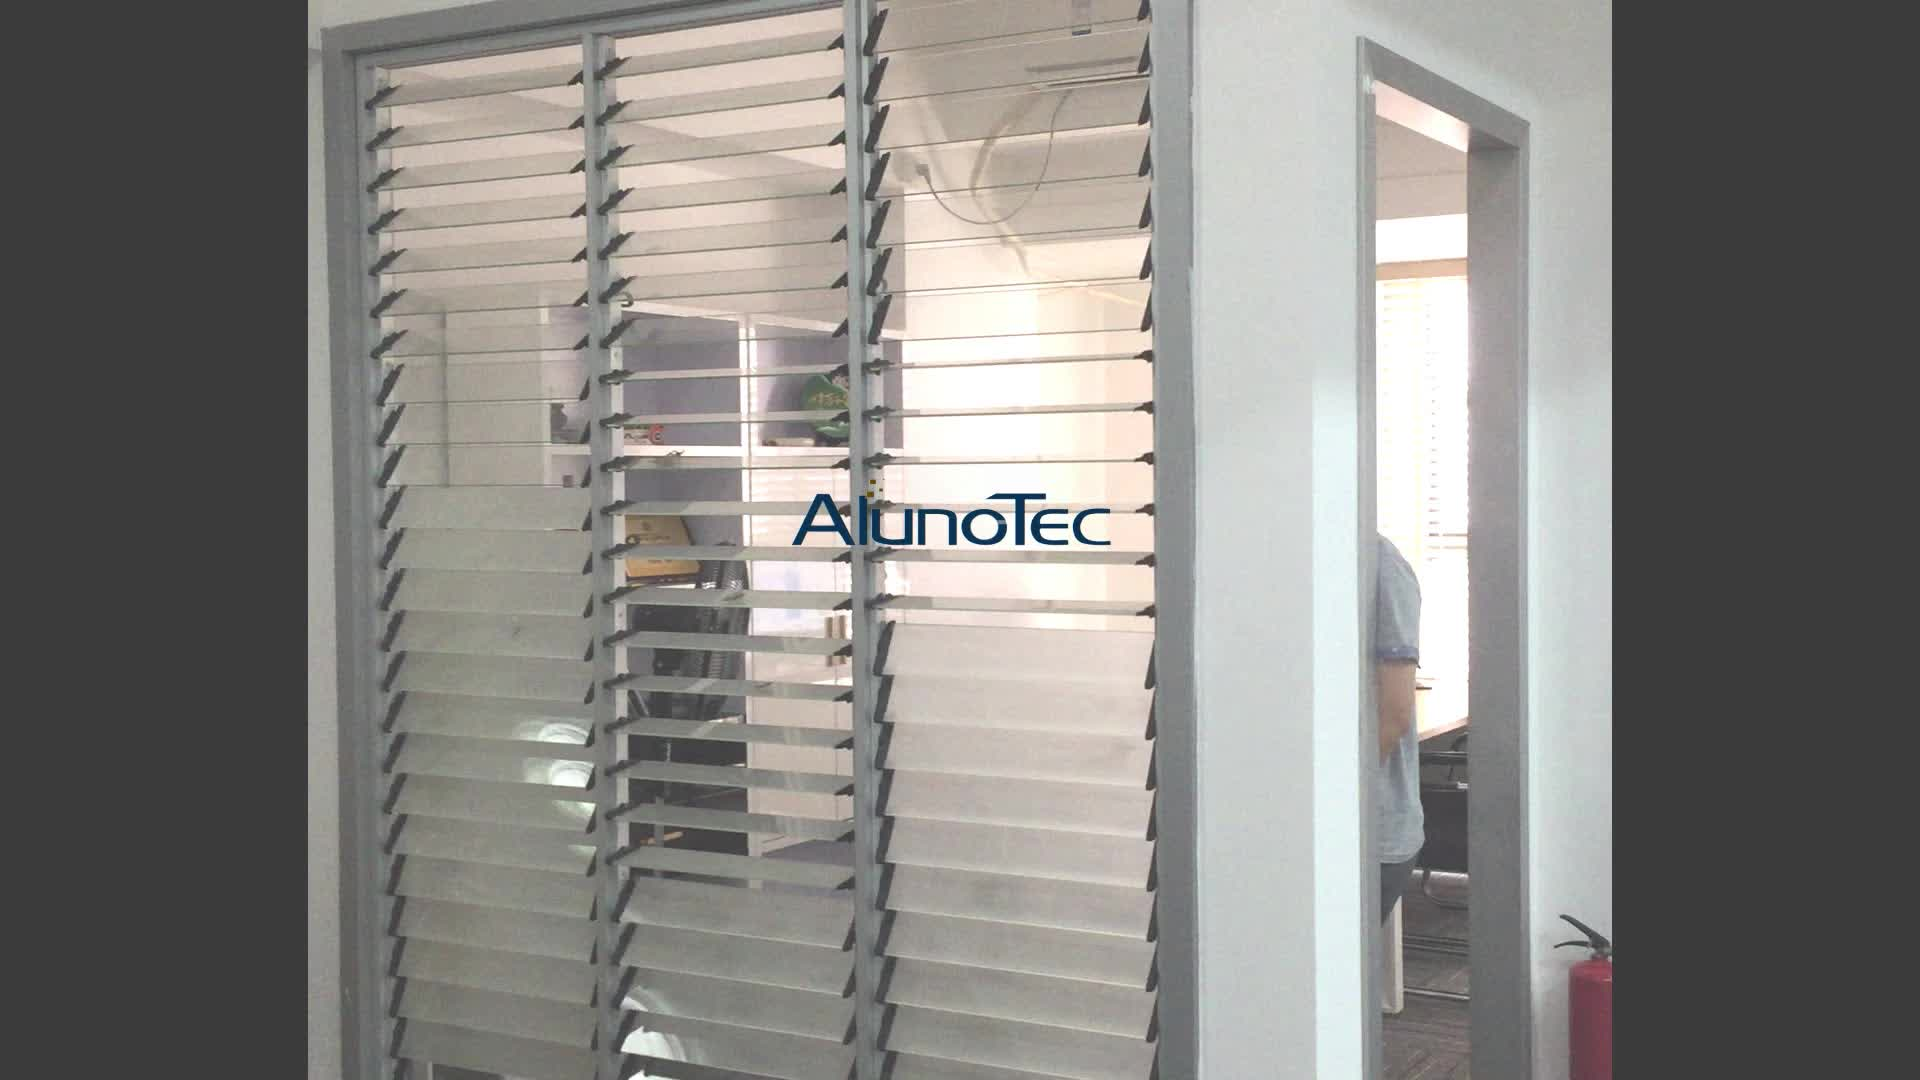 Customized Wooden Louvers Timber Louvre Windows With Security Mesh